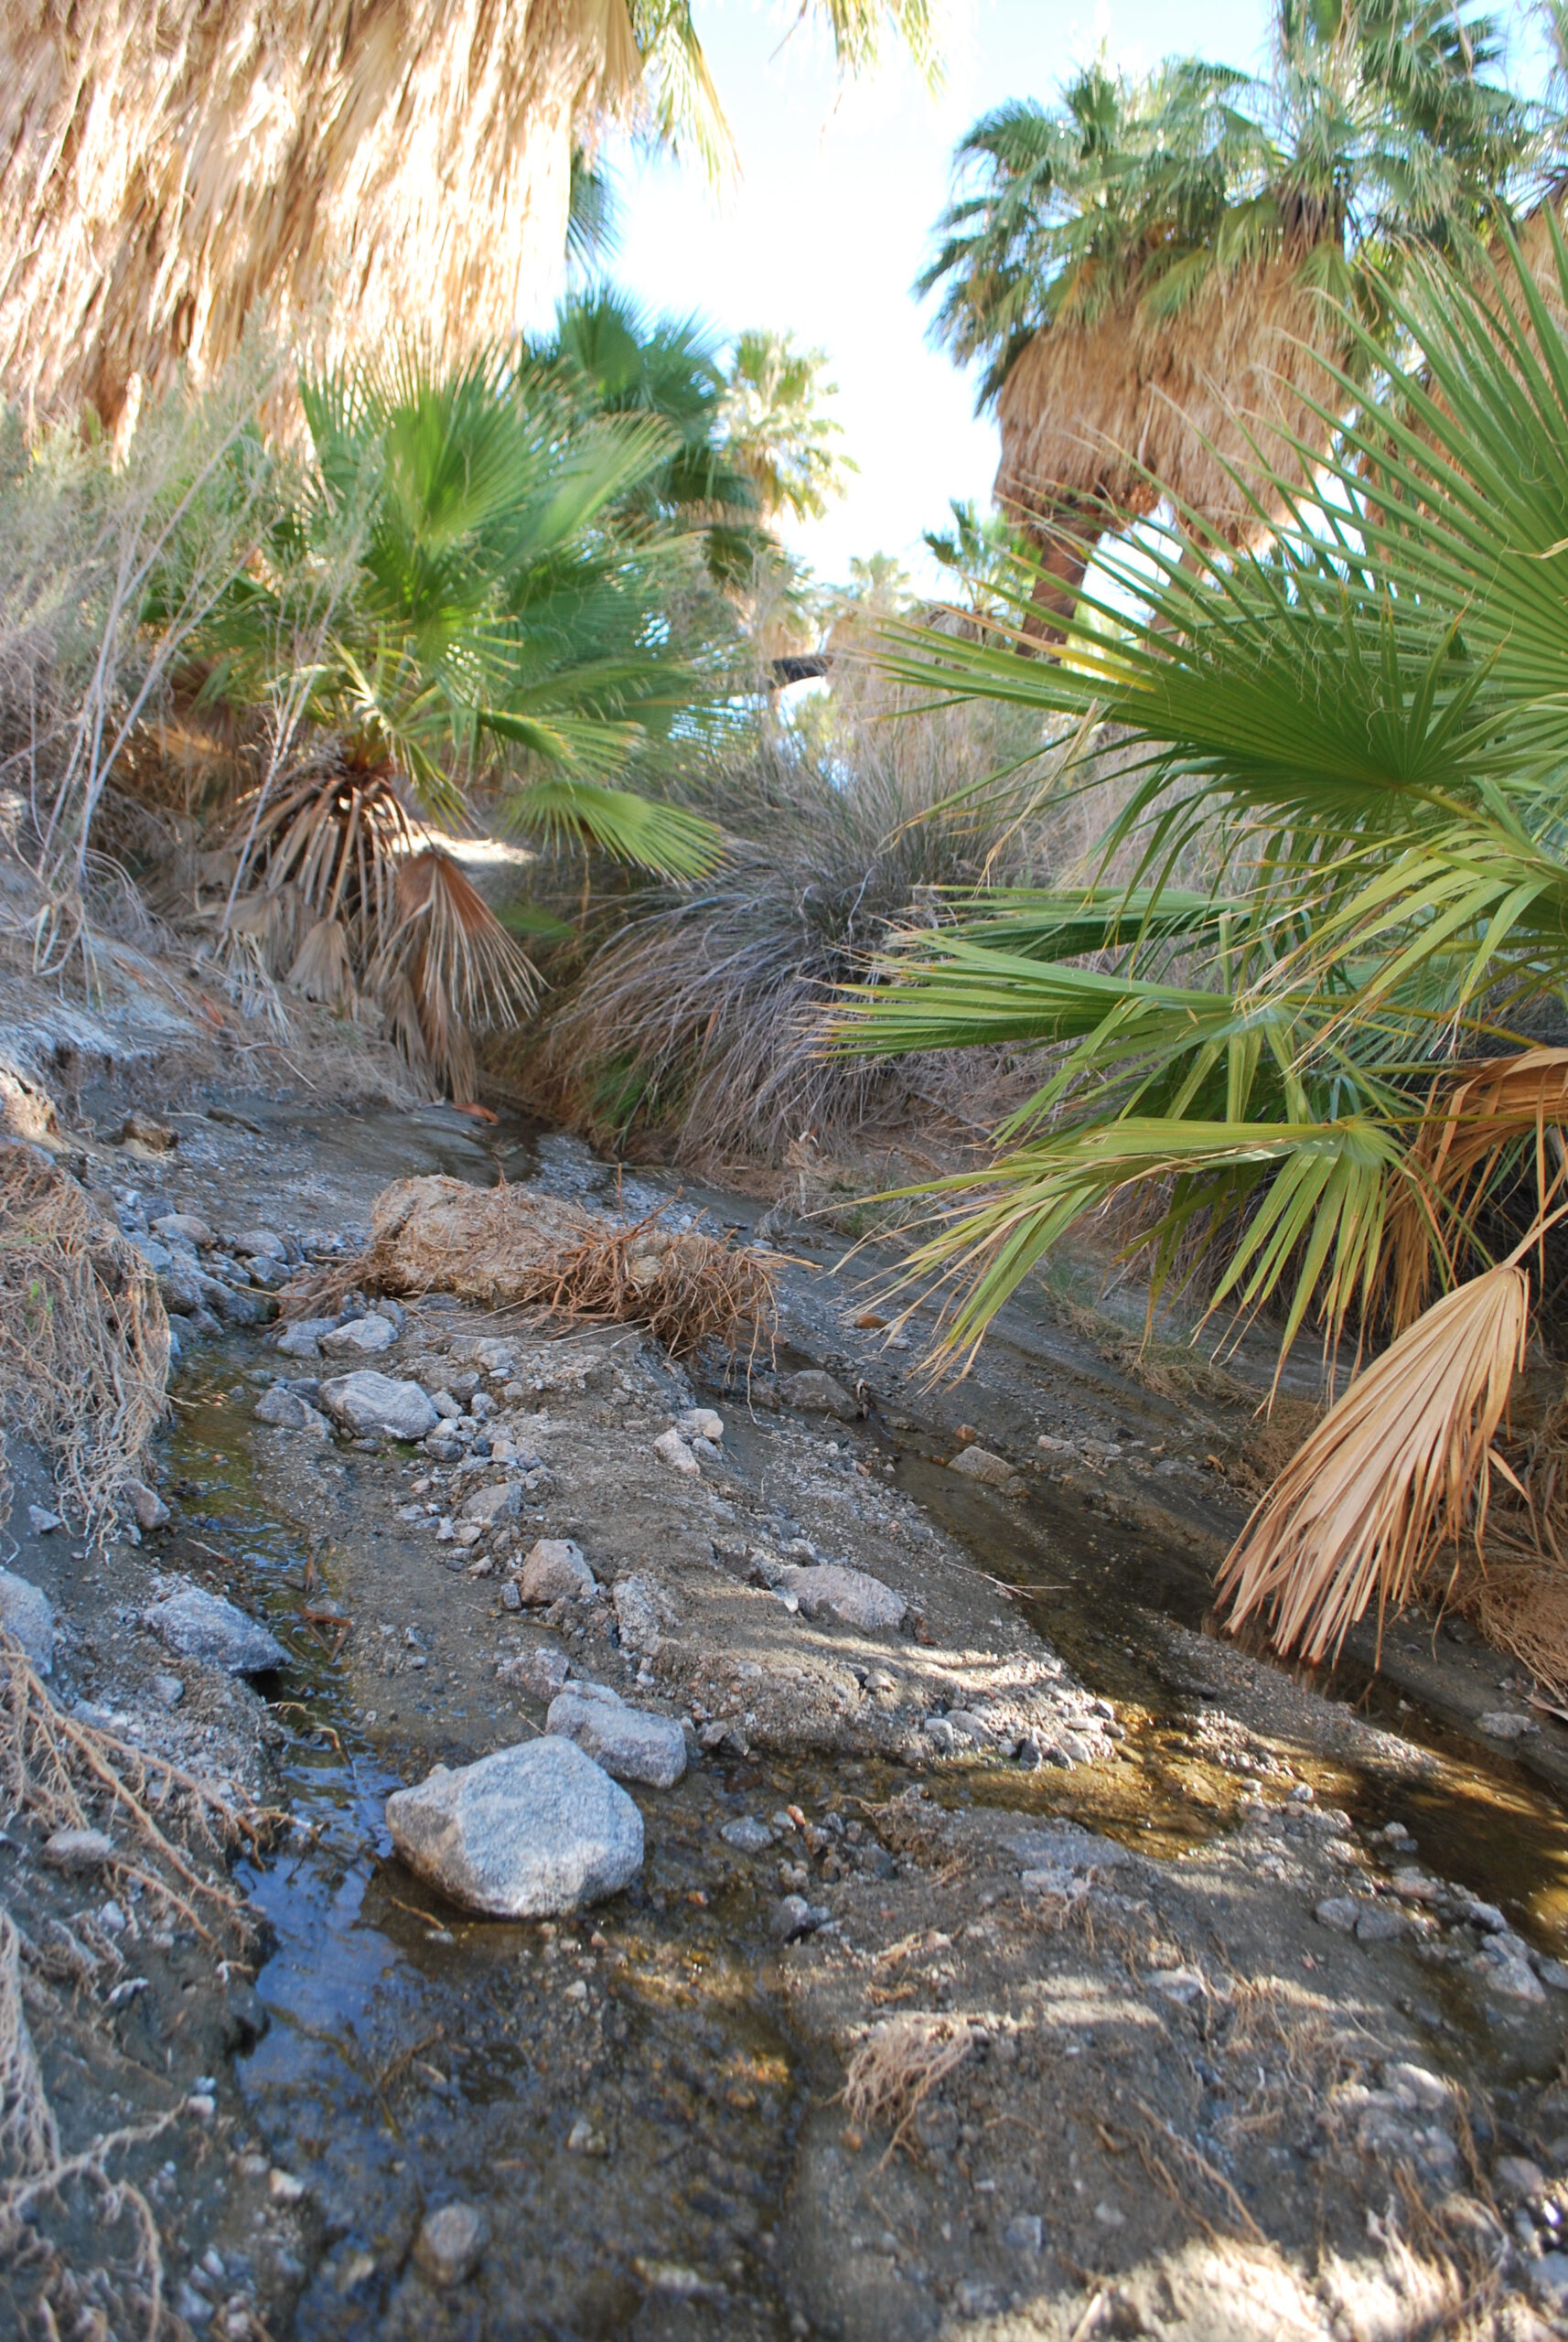 Aquifer near Palm Springs, something to see on a jeep tour in California in the fall